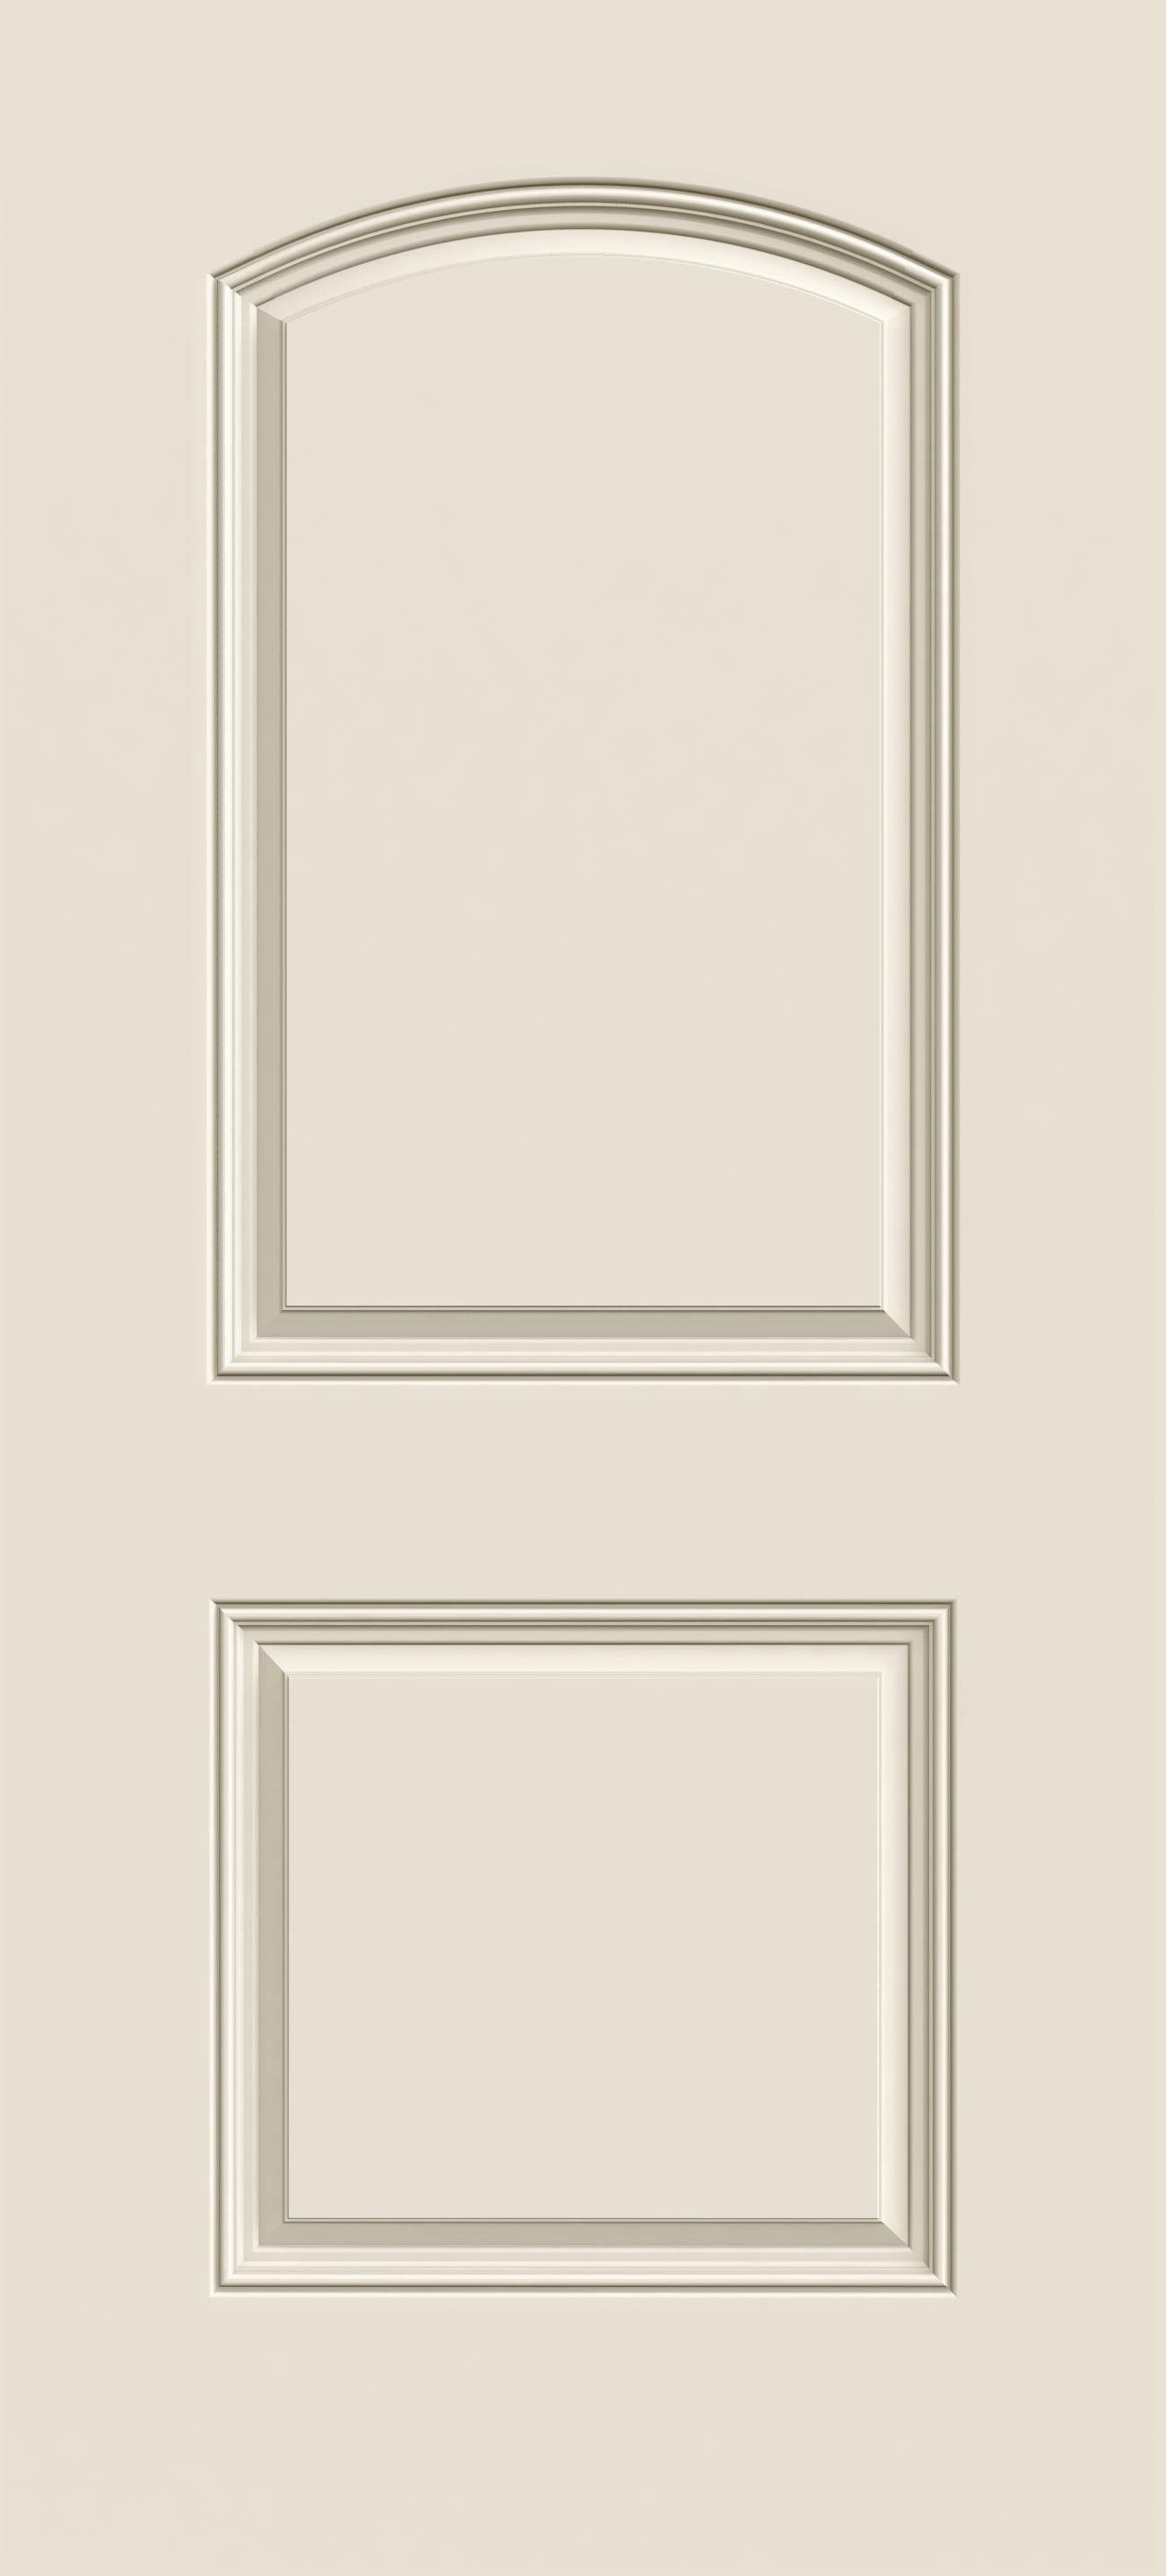 sc 1 st  Jeld-Wen & Smooth-Pro Fiberglass All Panel Exterior Door | JELD-WEN Windows u0026 Doors